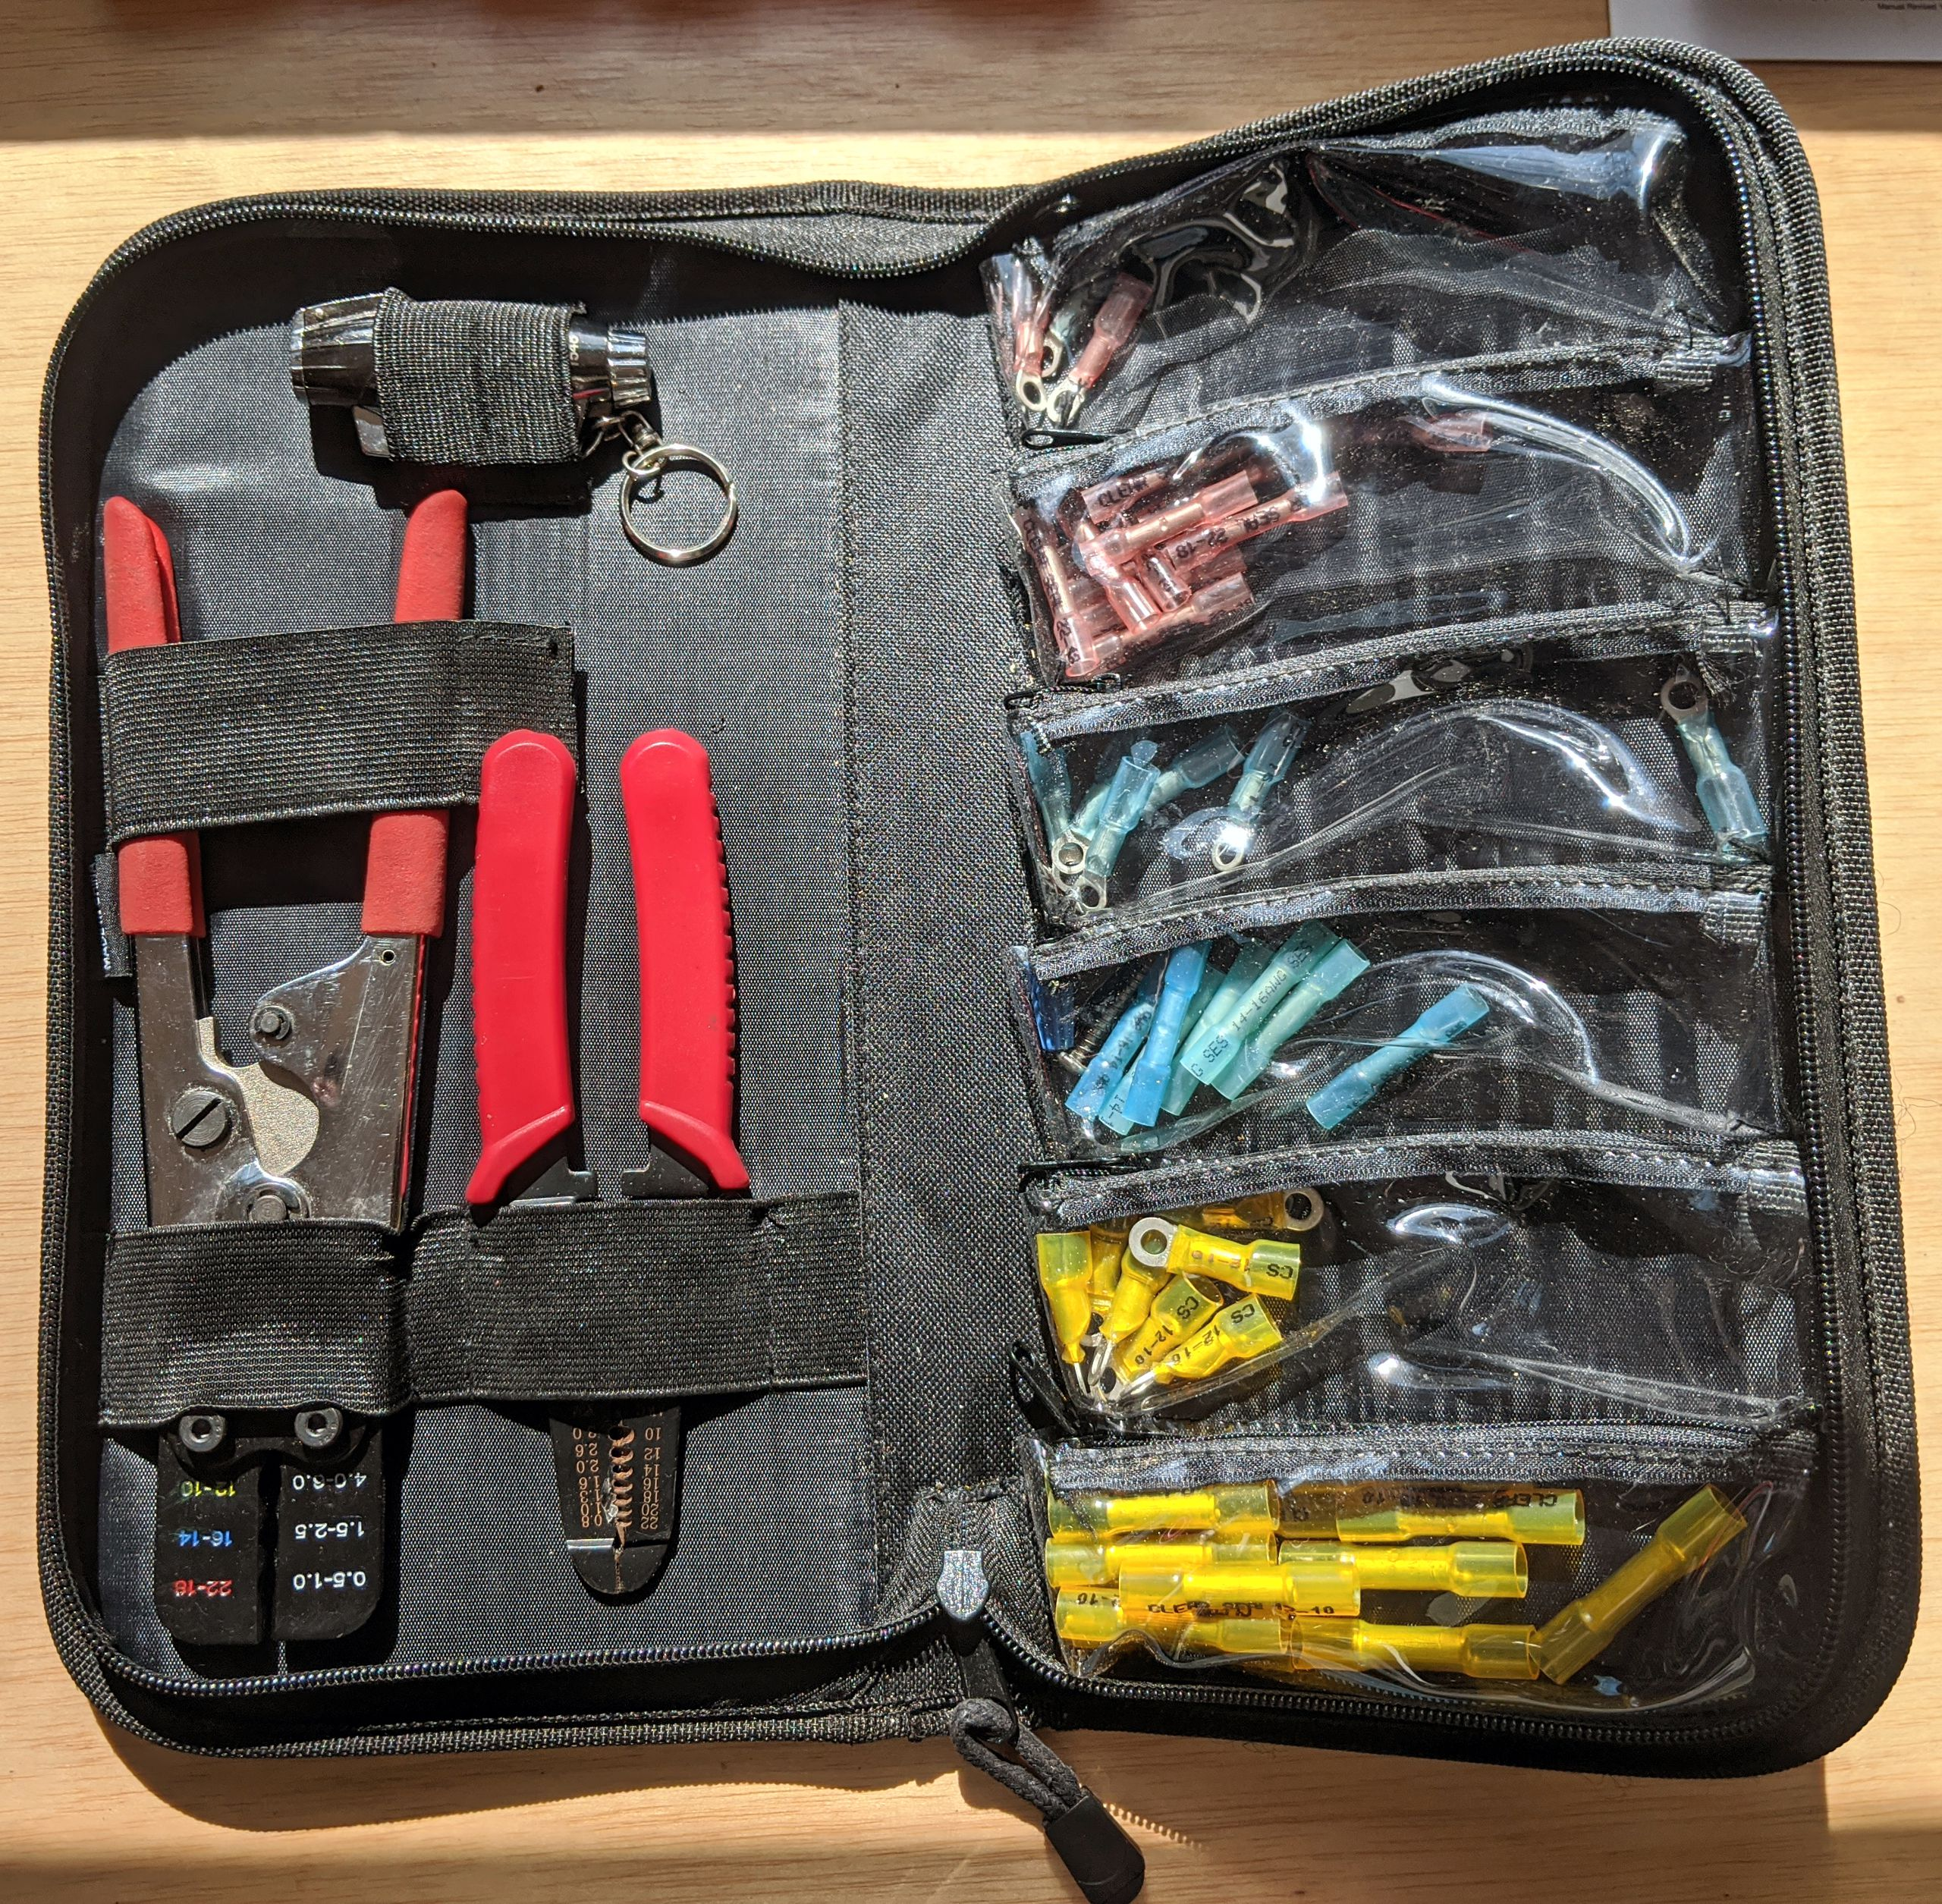 BSP heat shrink terminal kit